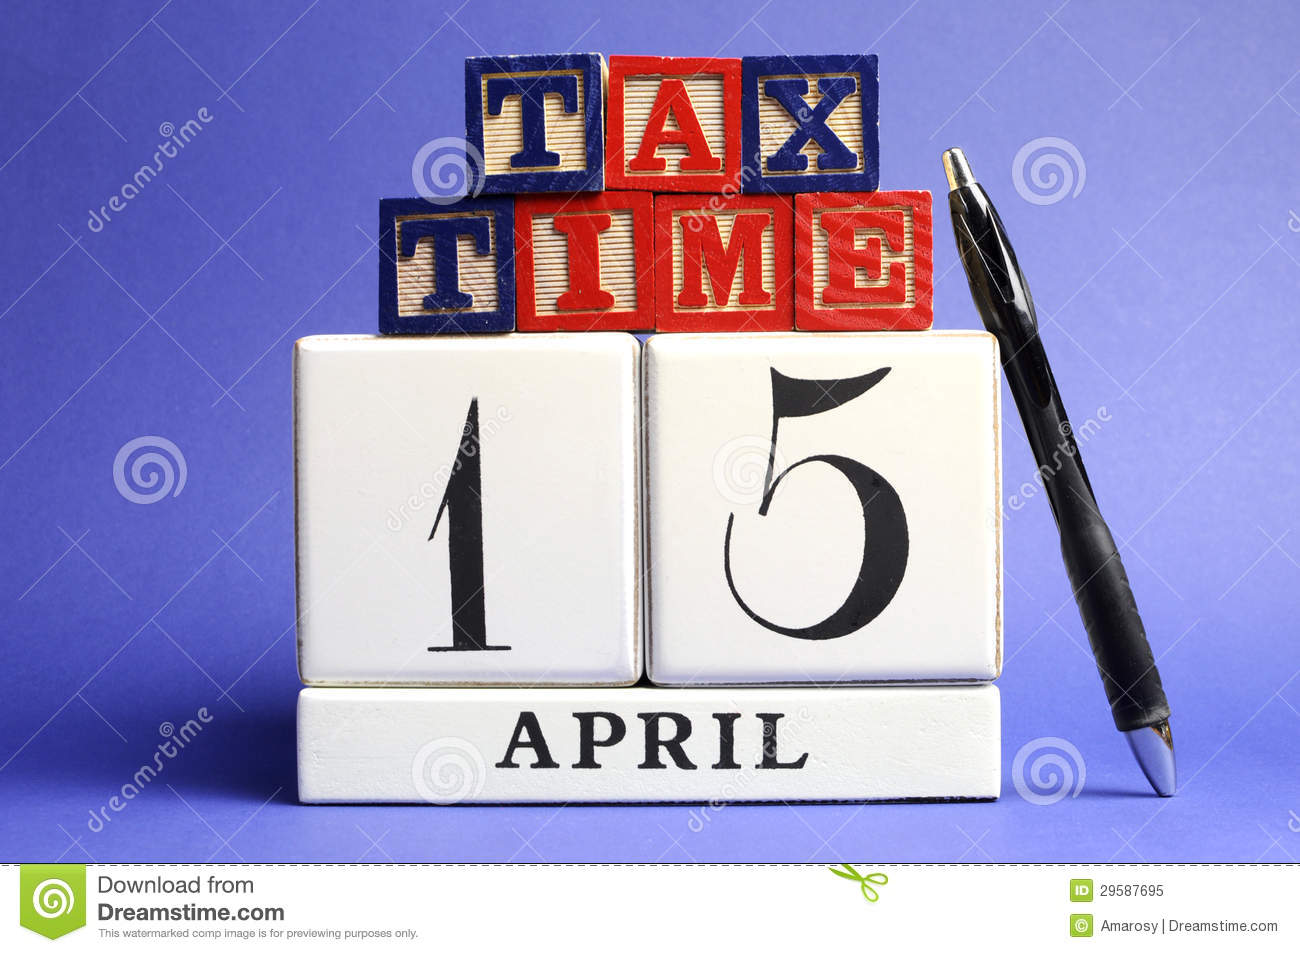 Tax april 15 day clipart image royalty free stock No tax clipart usa - ClipartFox image royalty free stock